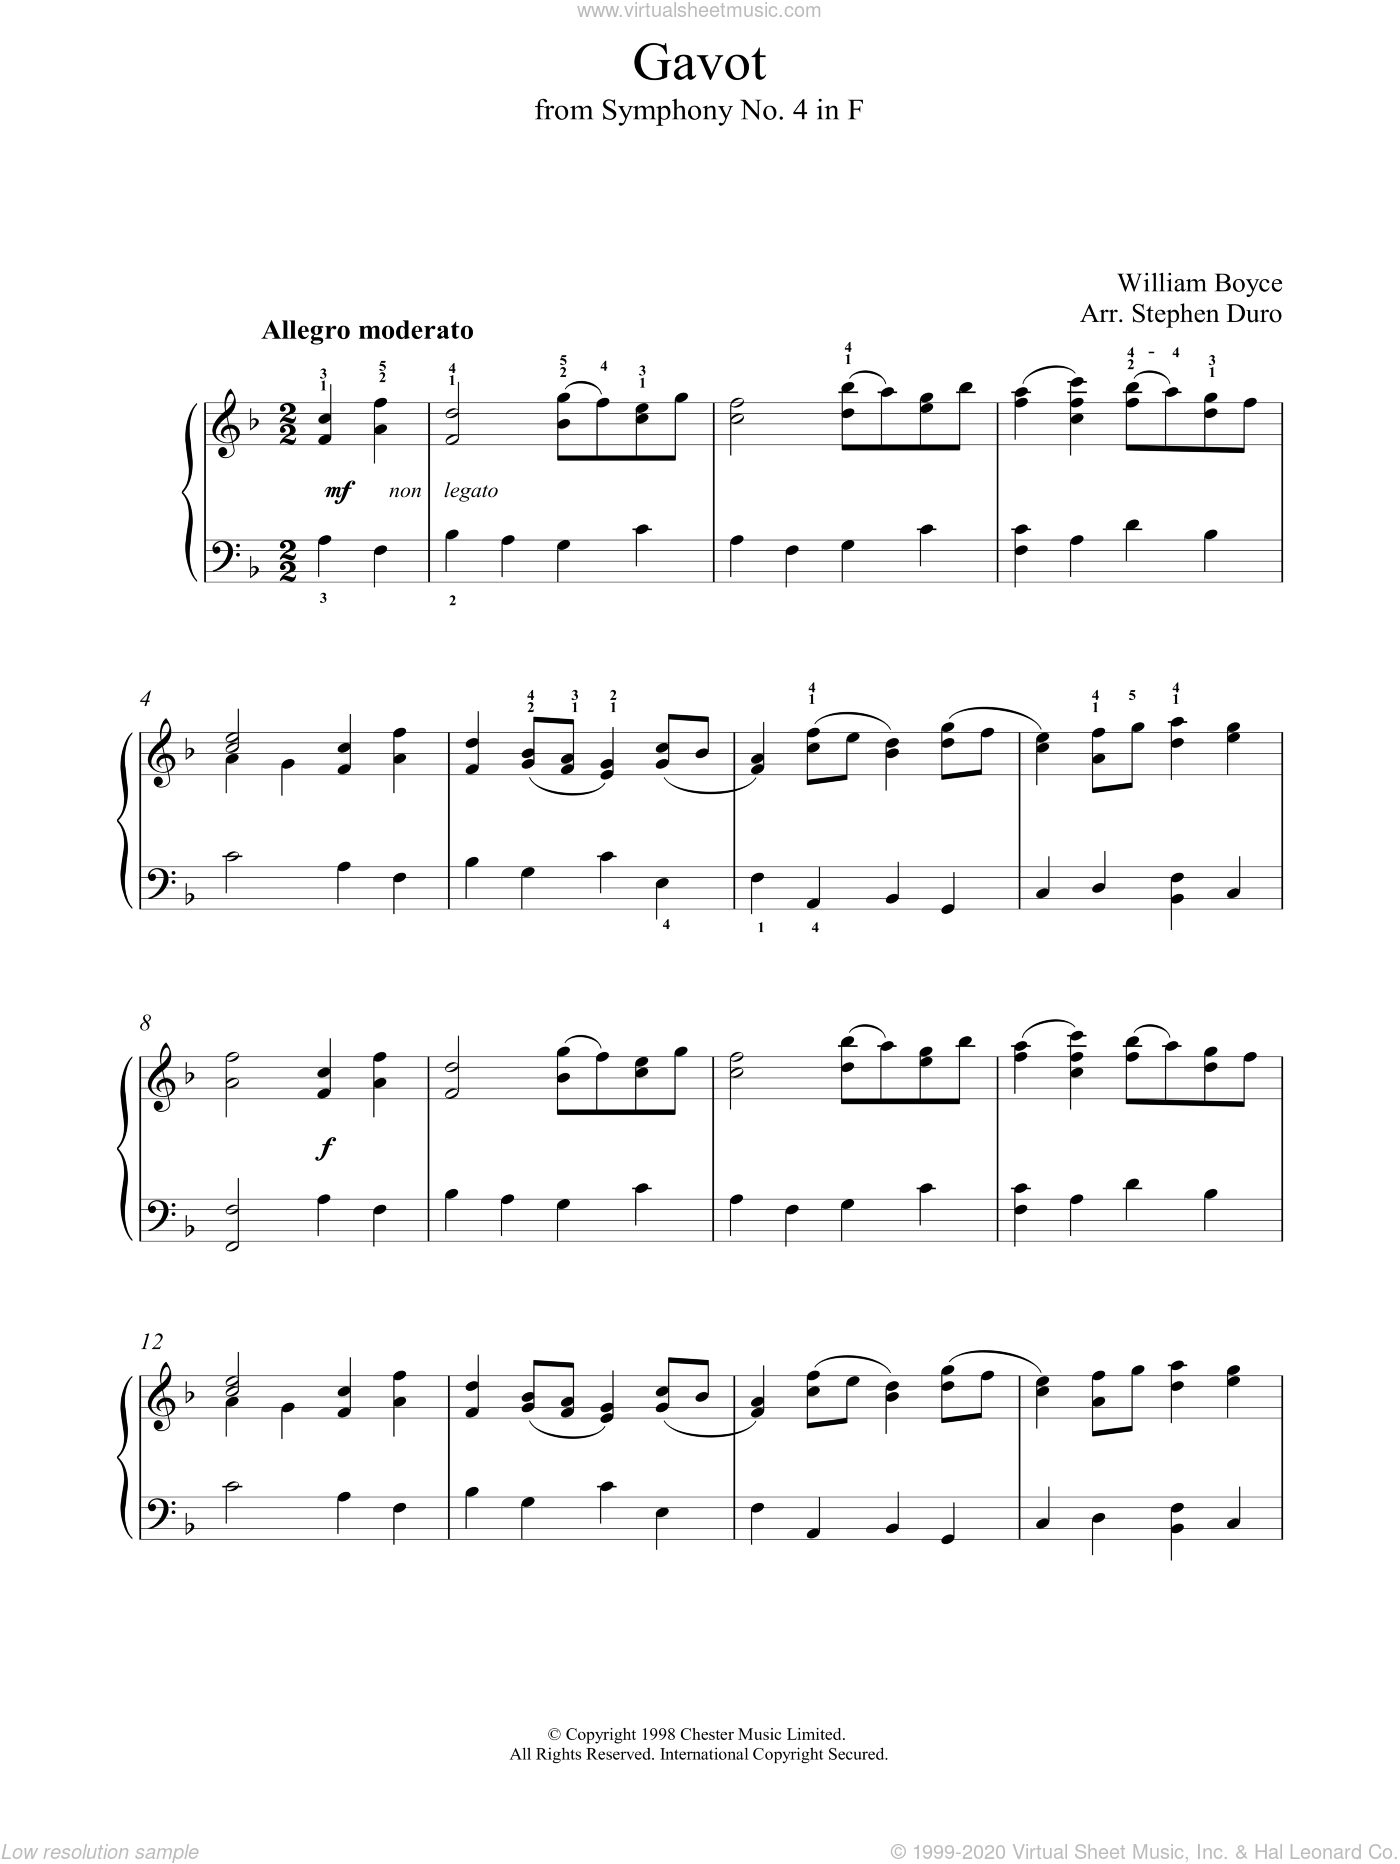 Gavot sheet music for voice, piano or guitar by William Boyce and Stephen Arr. Duro, classical score, intermediate skill level